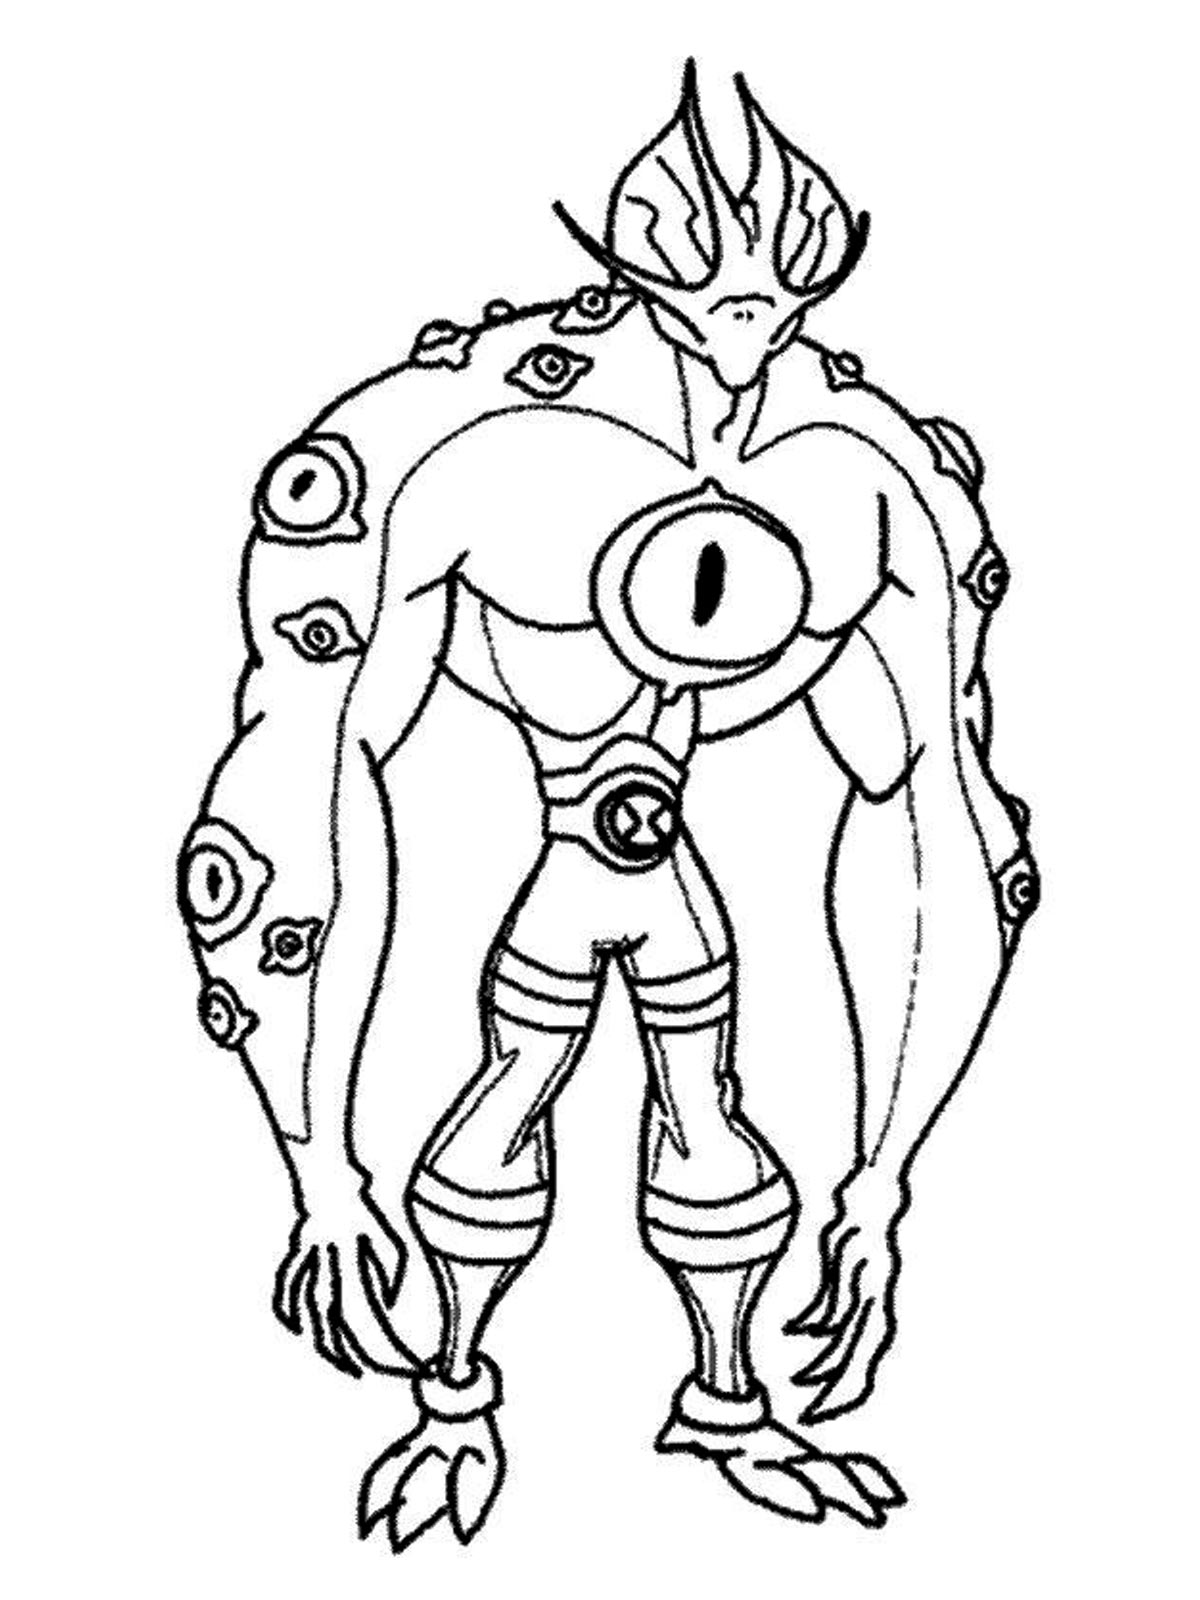 Ben 10 Echo Echo Coloring Pages